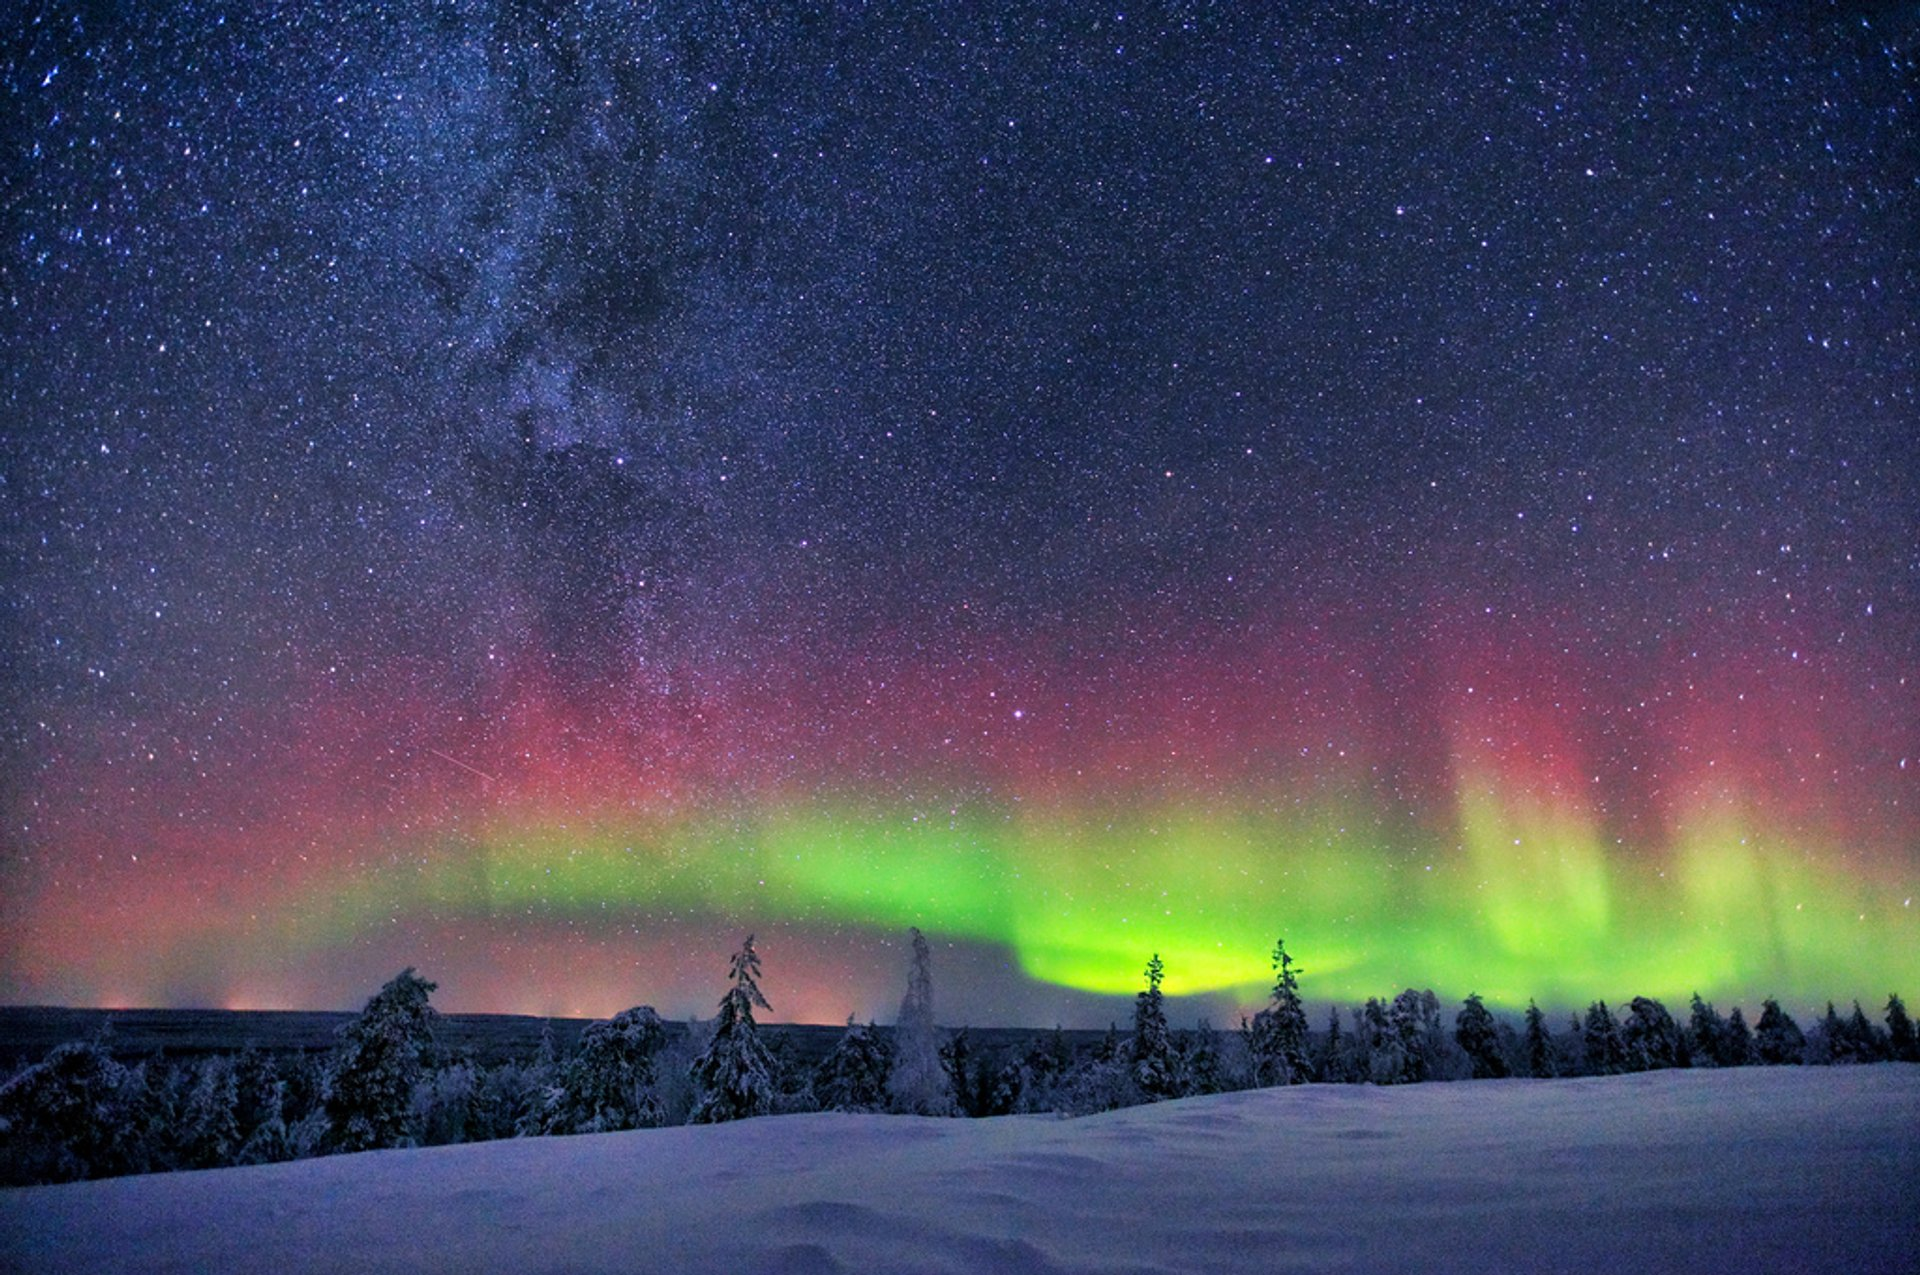 Northern Lights in Finland - Best Season 2020